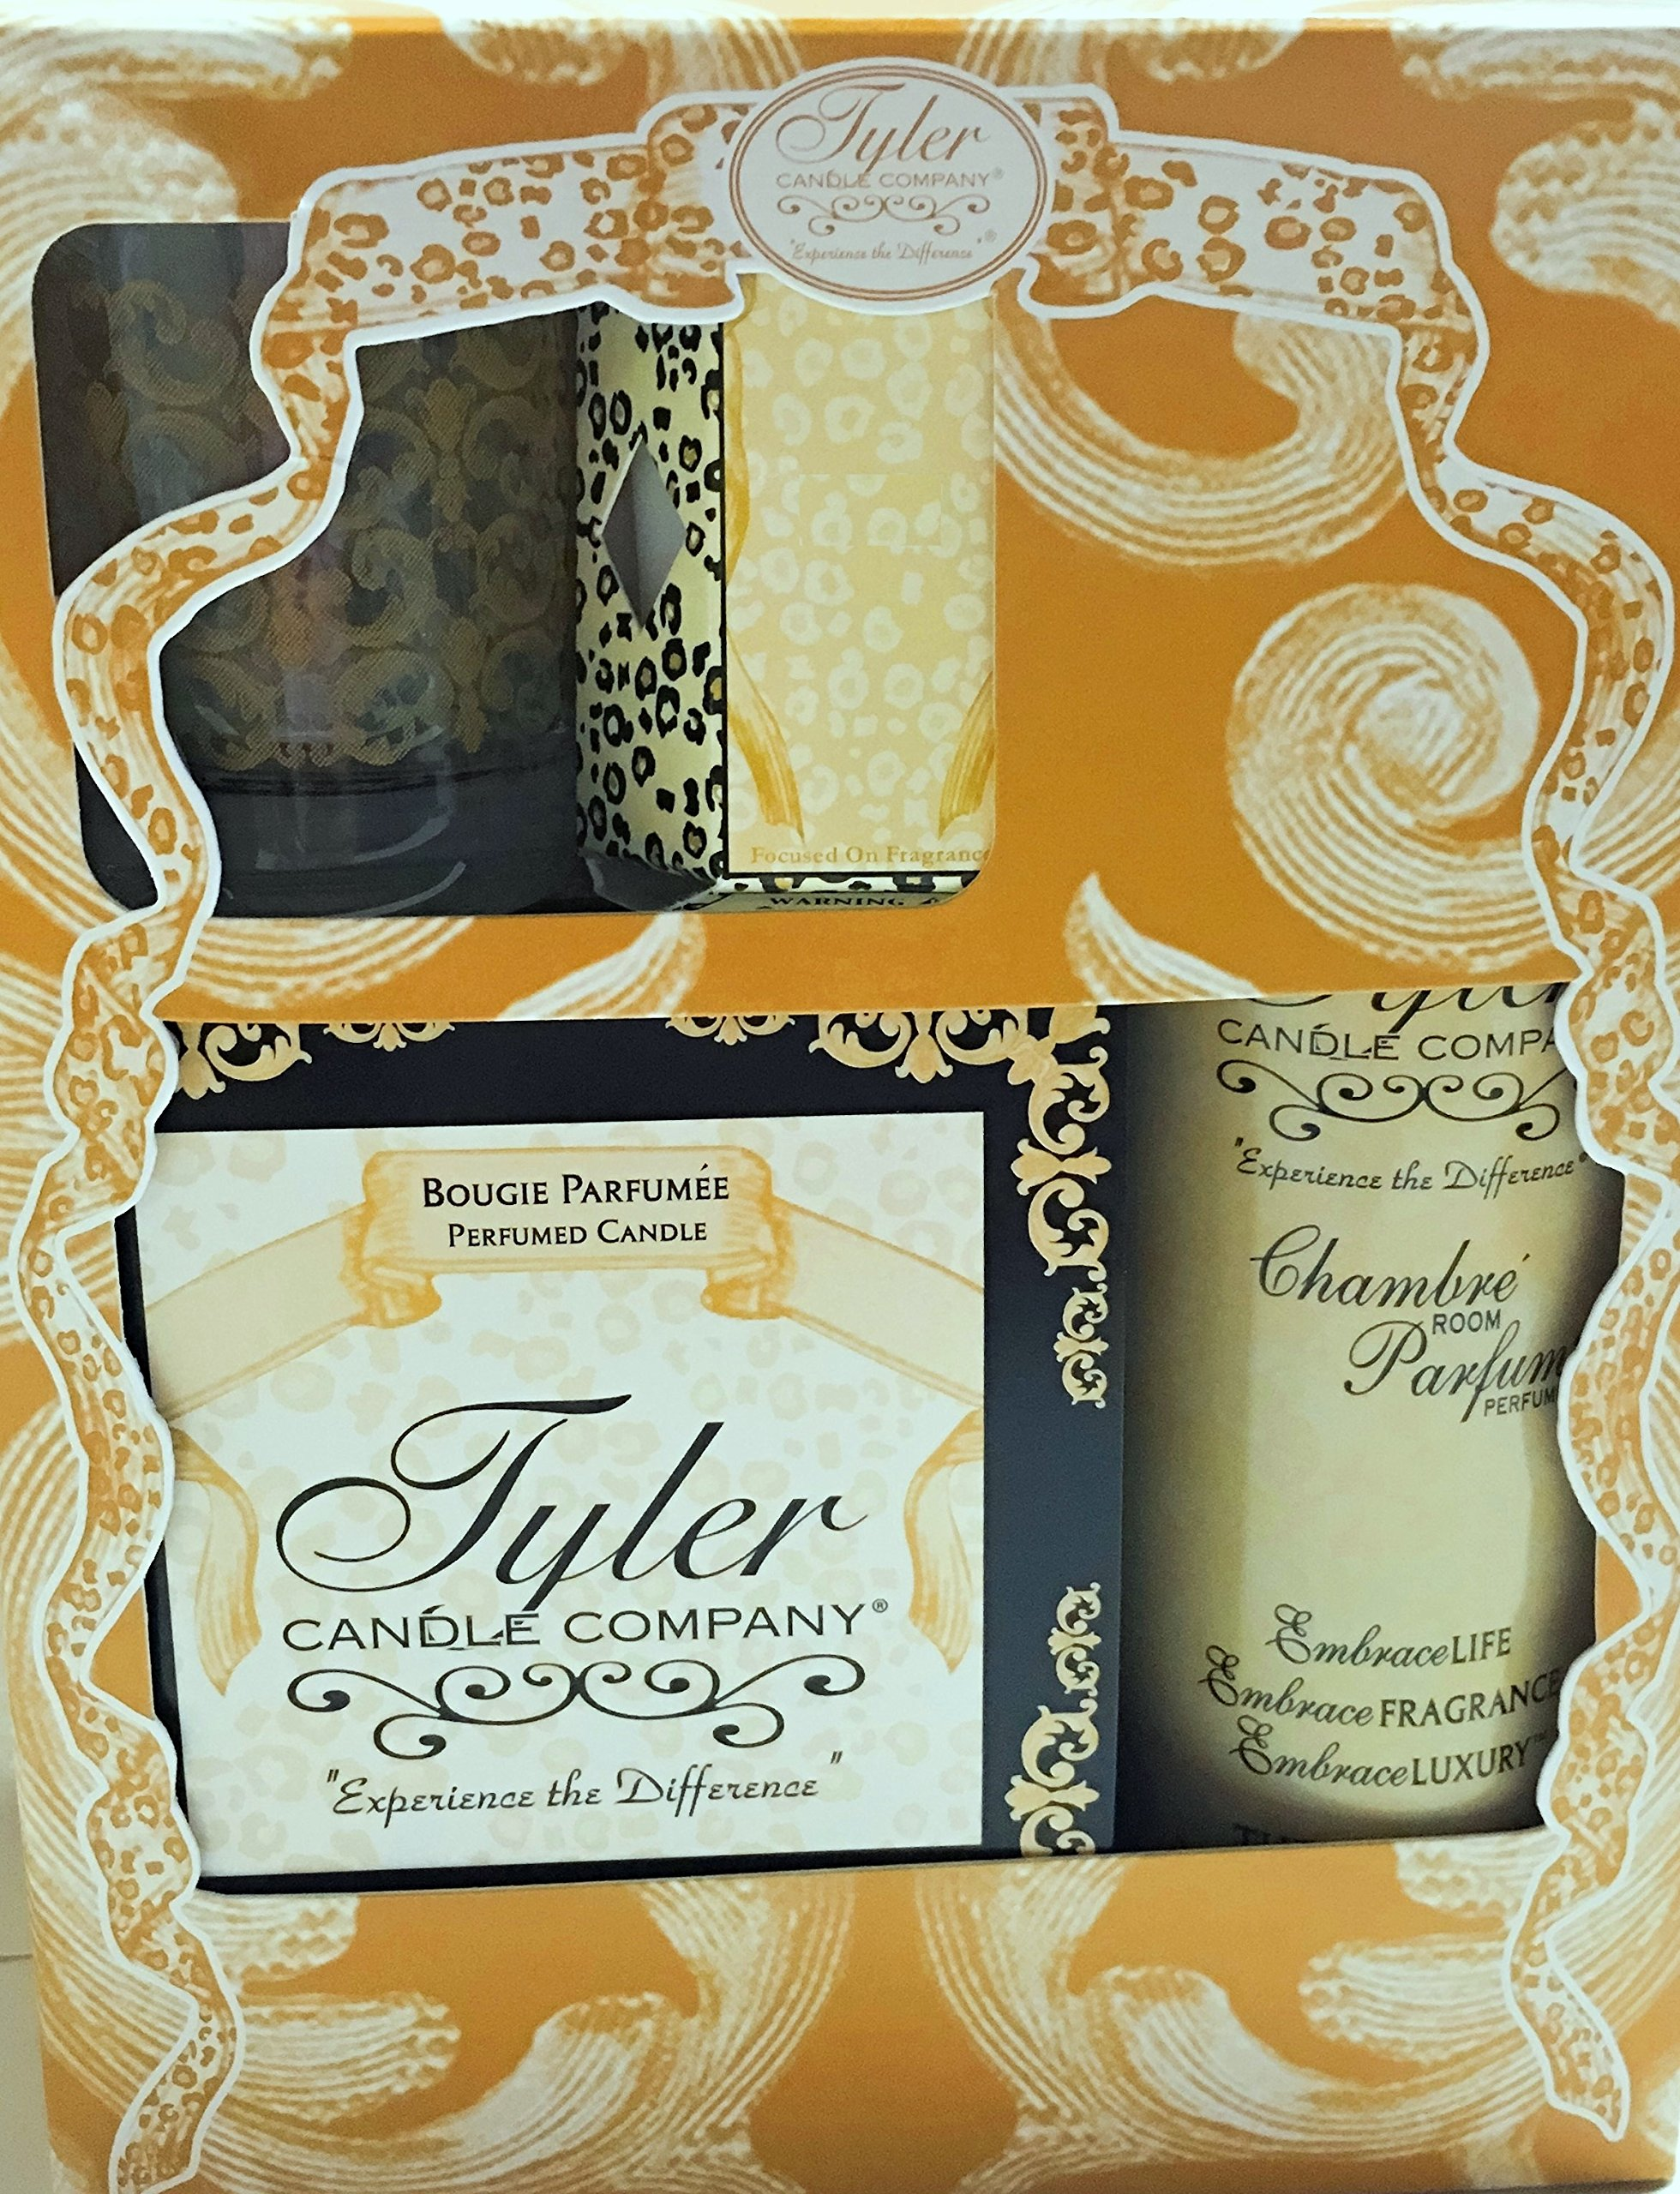 Tyler Candle Gift Set II - Bless Your Heart - 11oz Prestige Candle, 9oz Chambre Room Perfum, 2oz Votive Candle, Glass Votive Holder